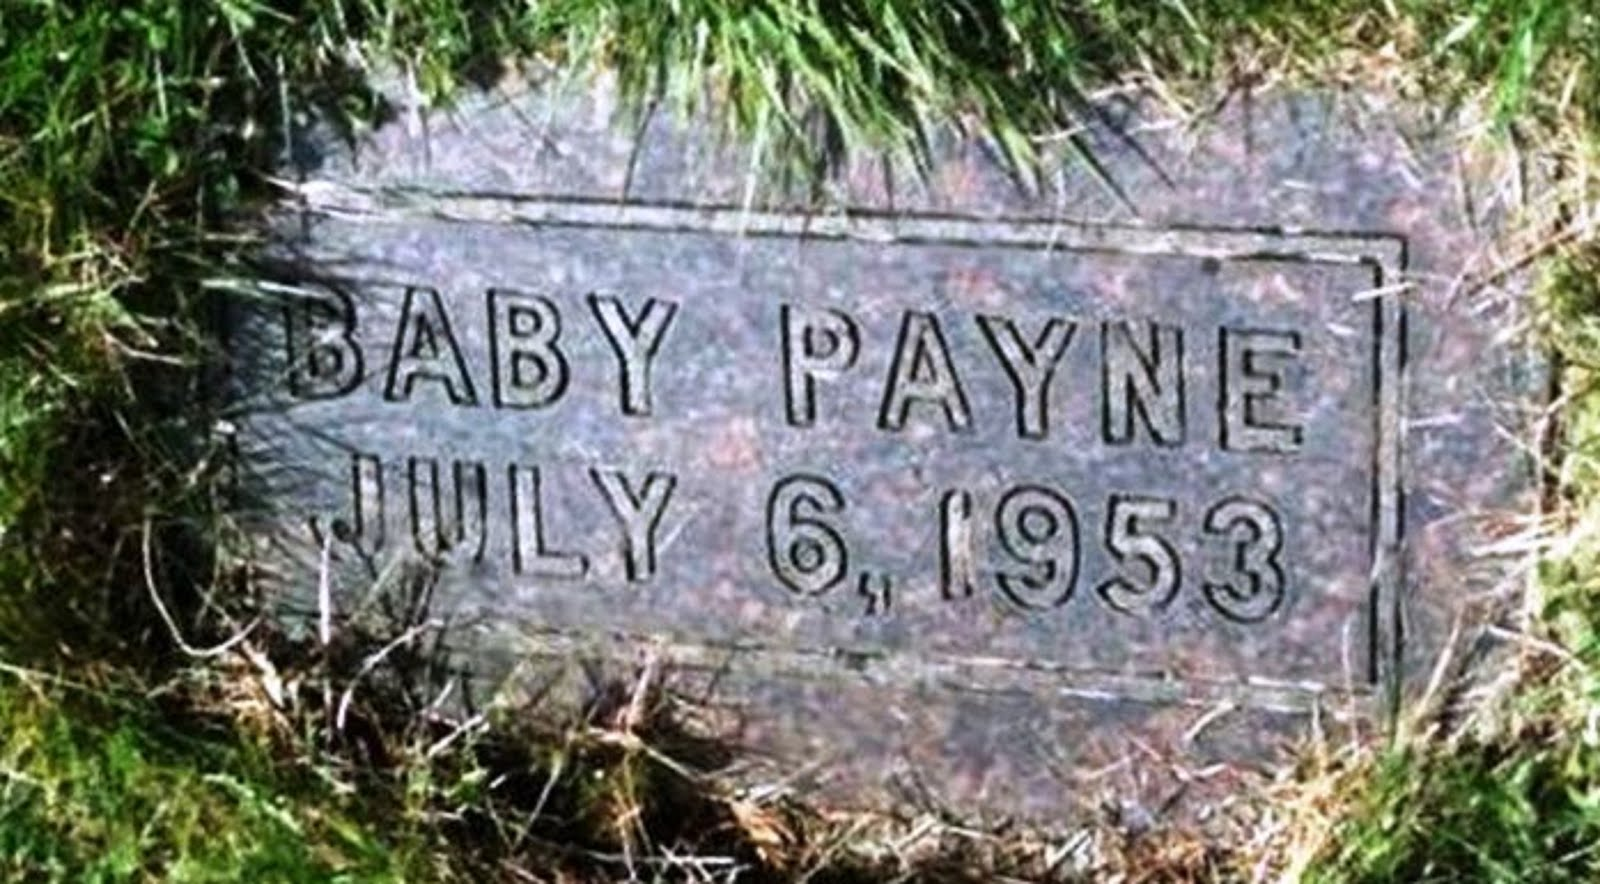 BABY PAYNE - IN HONOR TO MY LITTLE INFANT BABY SISTER